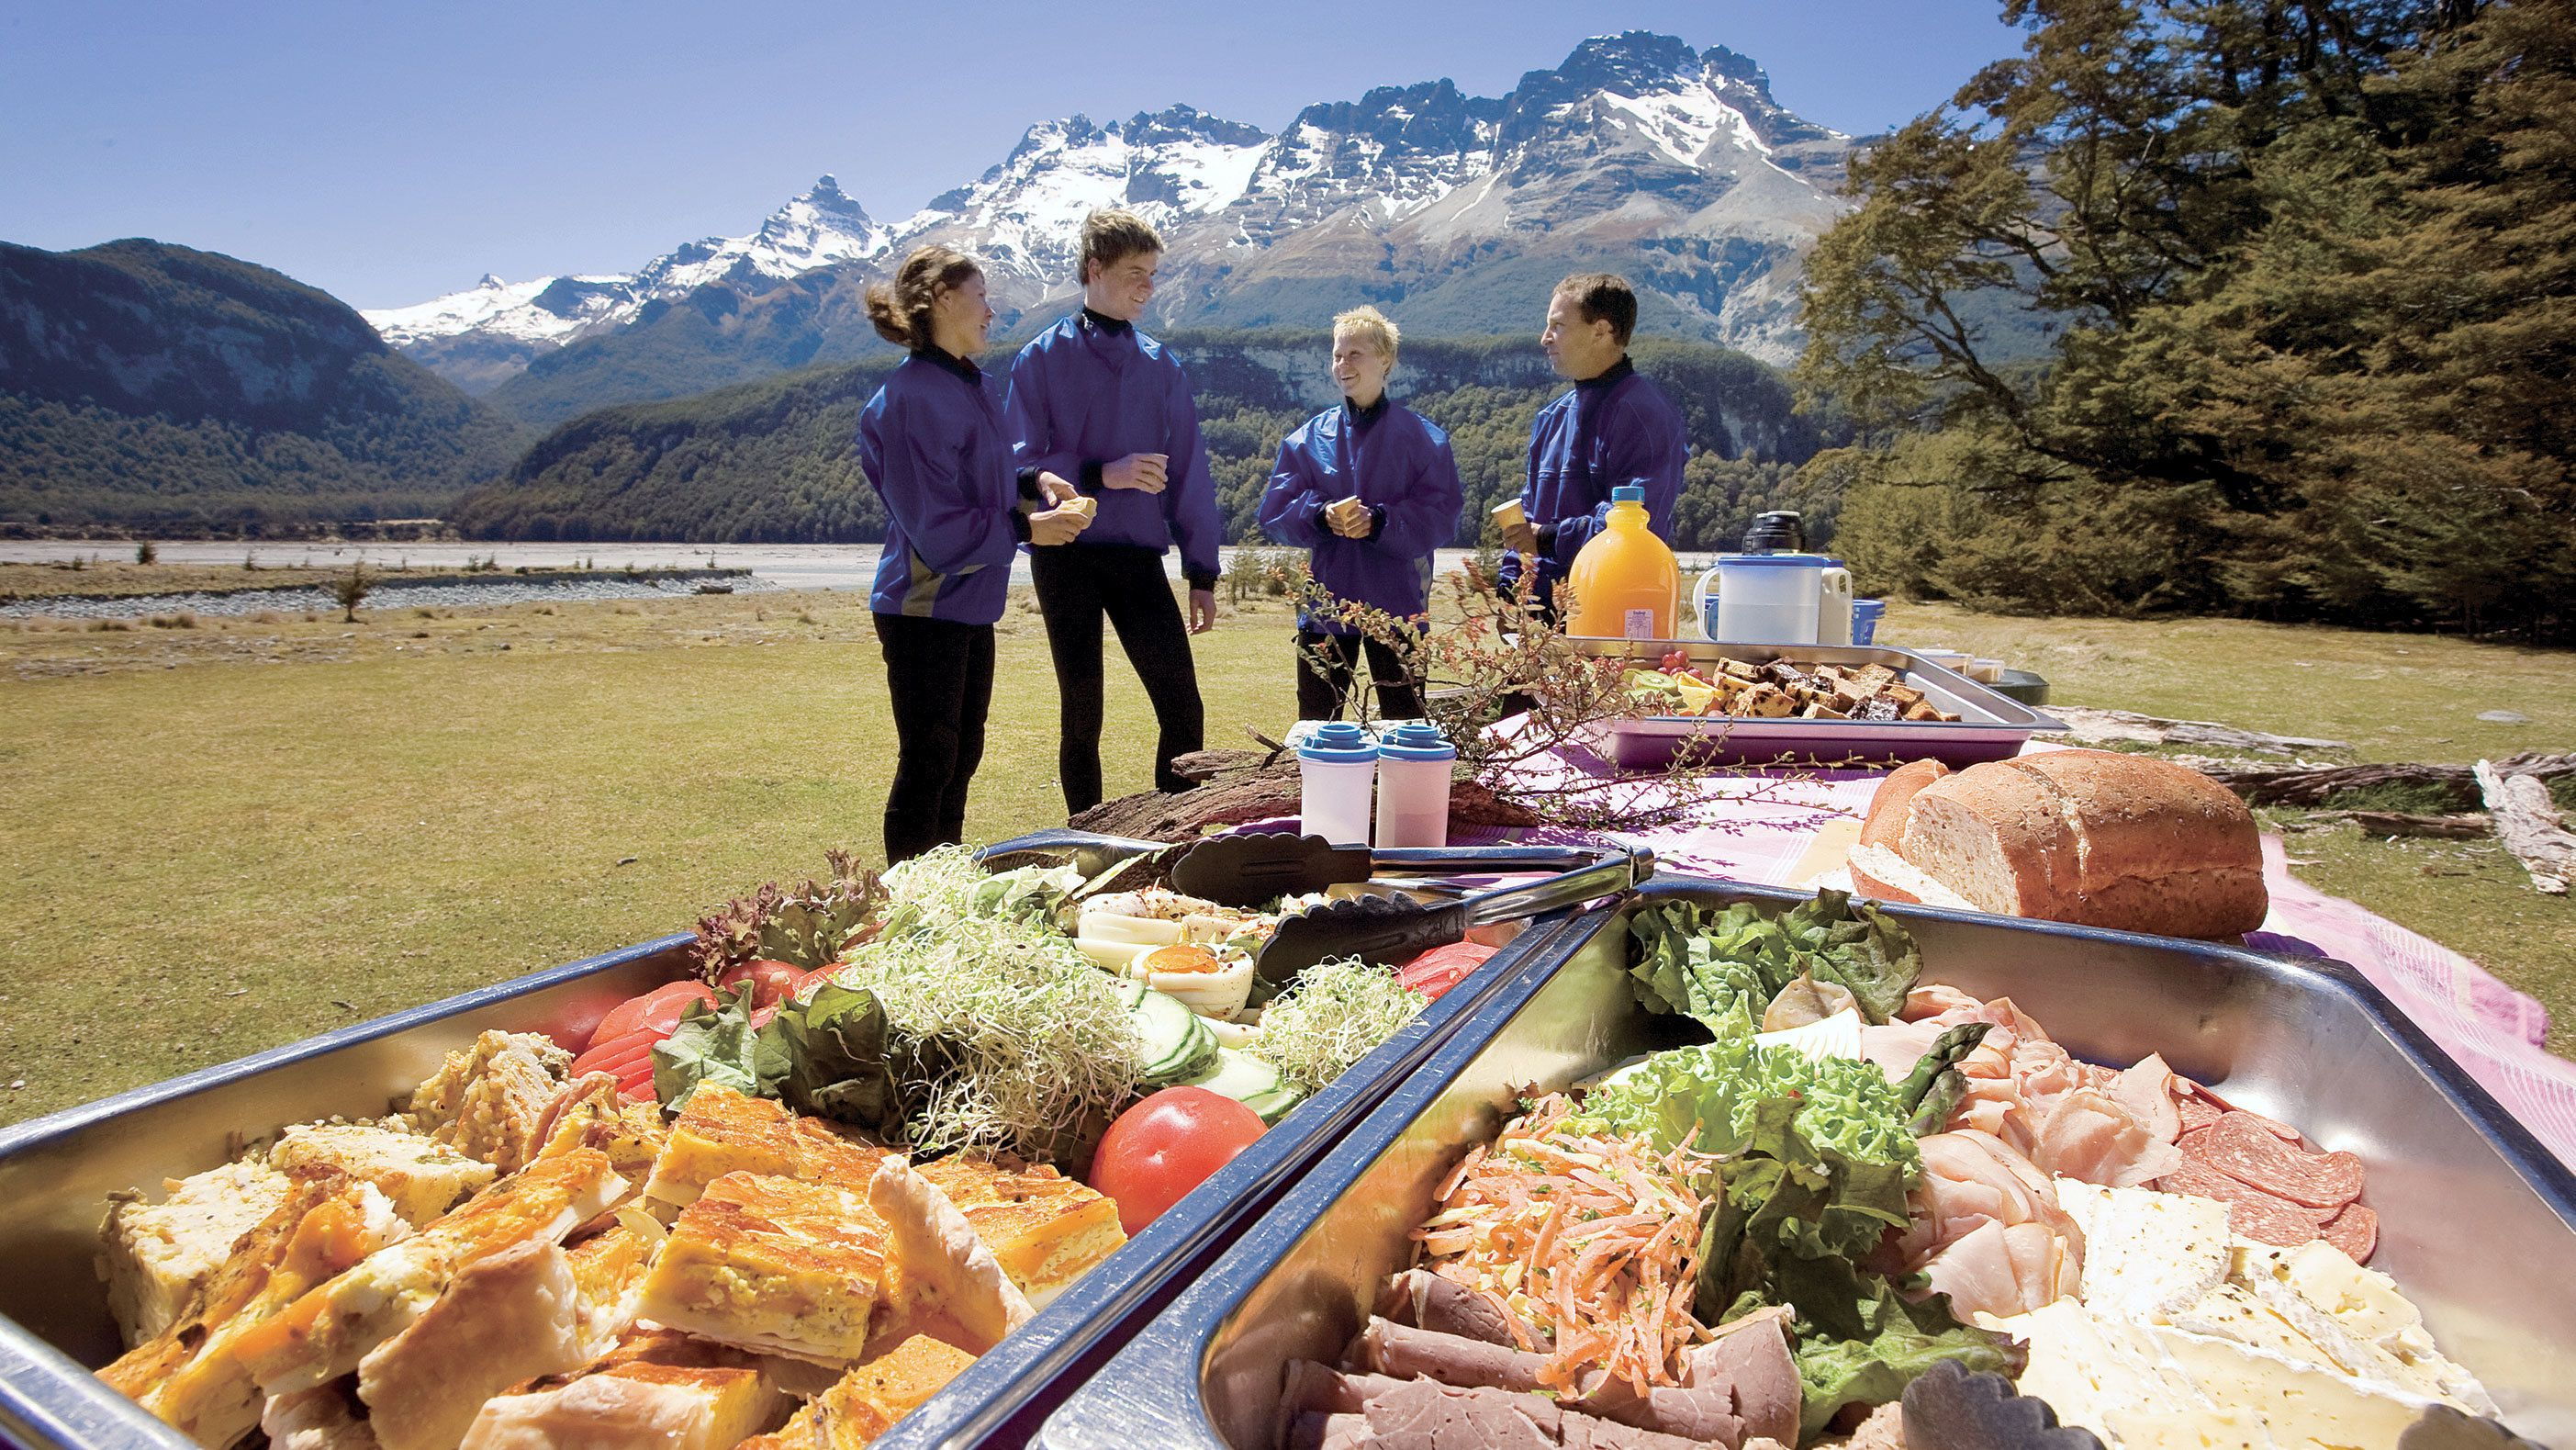 enjoying buffet styled lunch out in the open in New Zealand